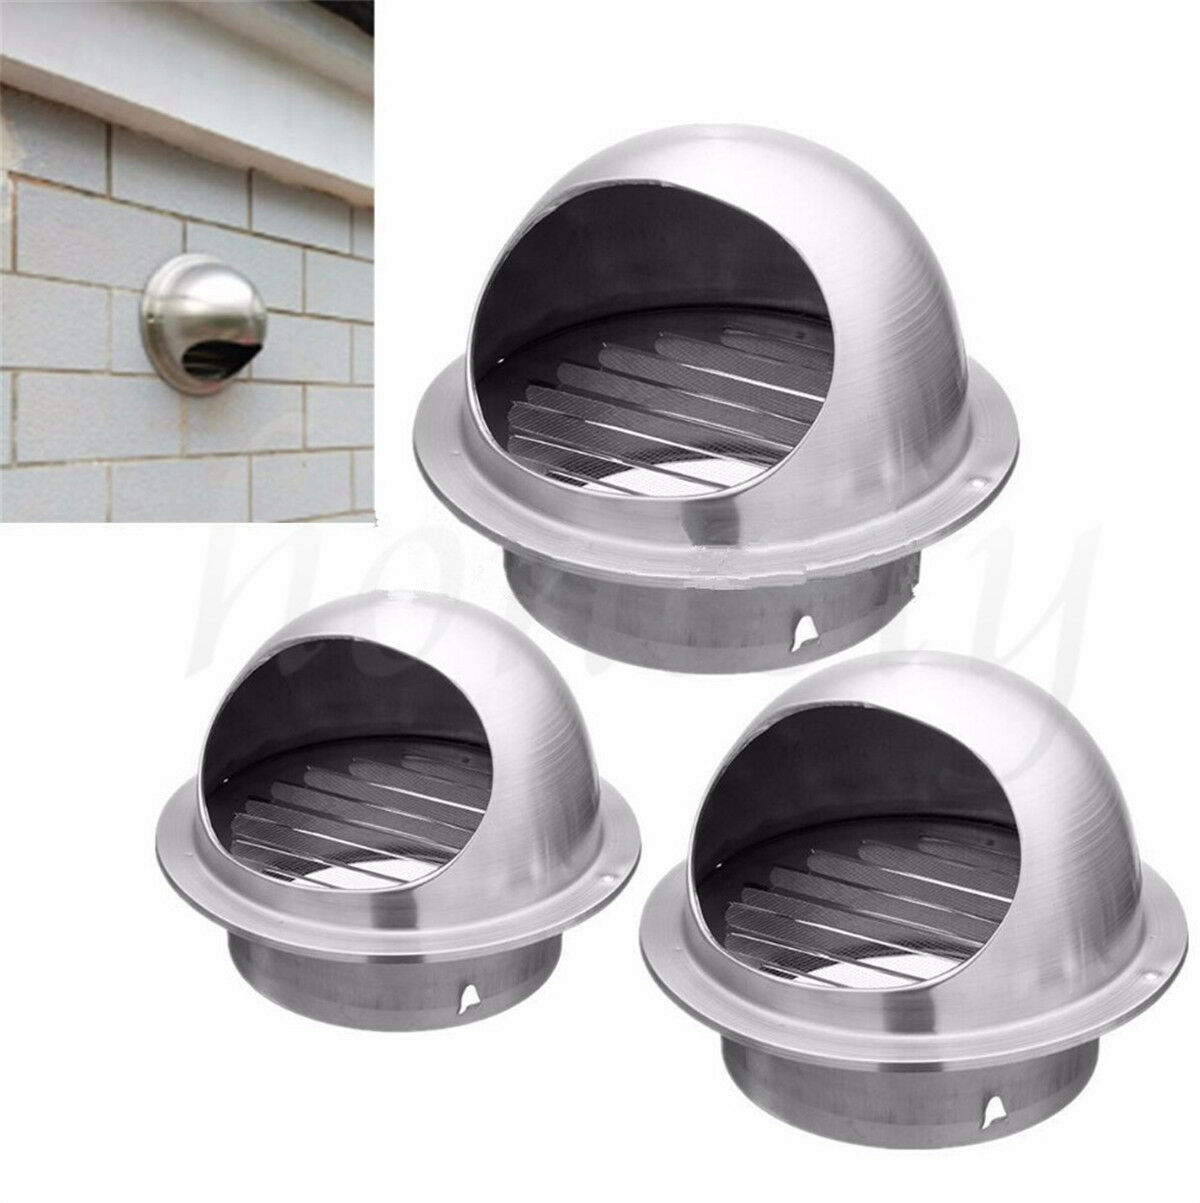 Wall Air Vent Ducting Ventilation Exhaust Grille Cover Outlet Stainless Steel ❤